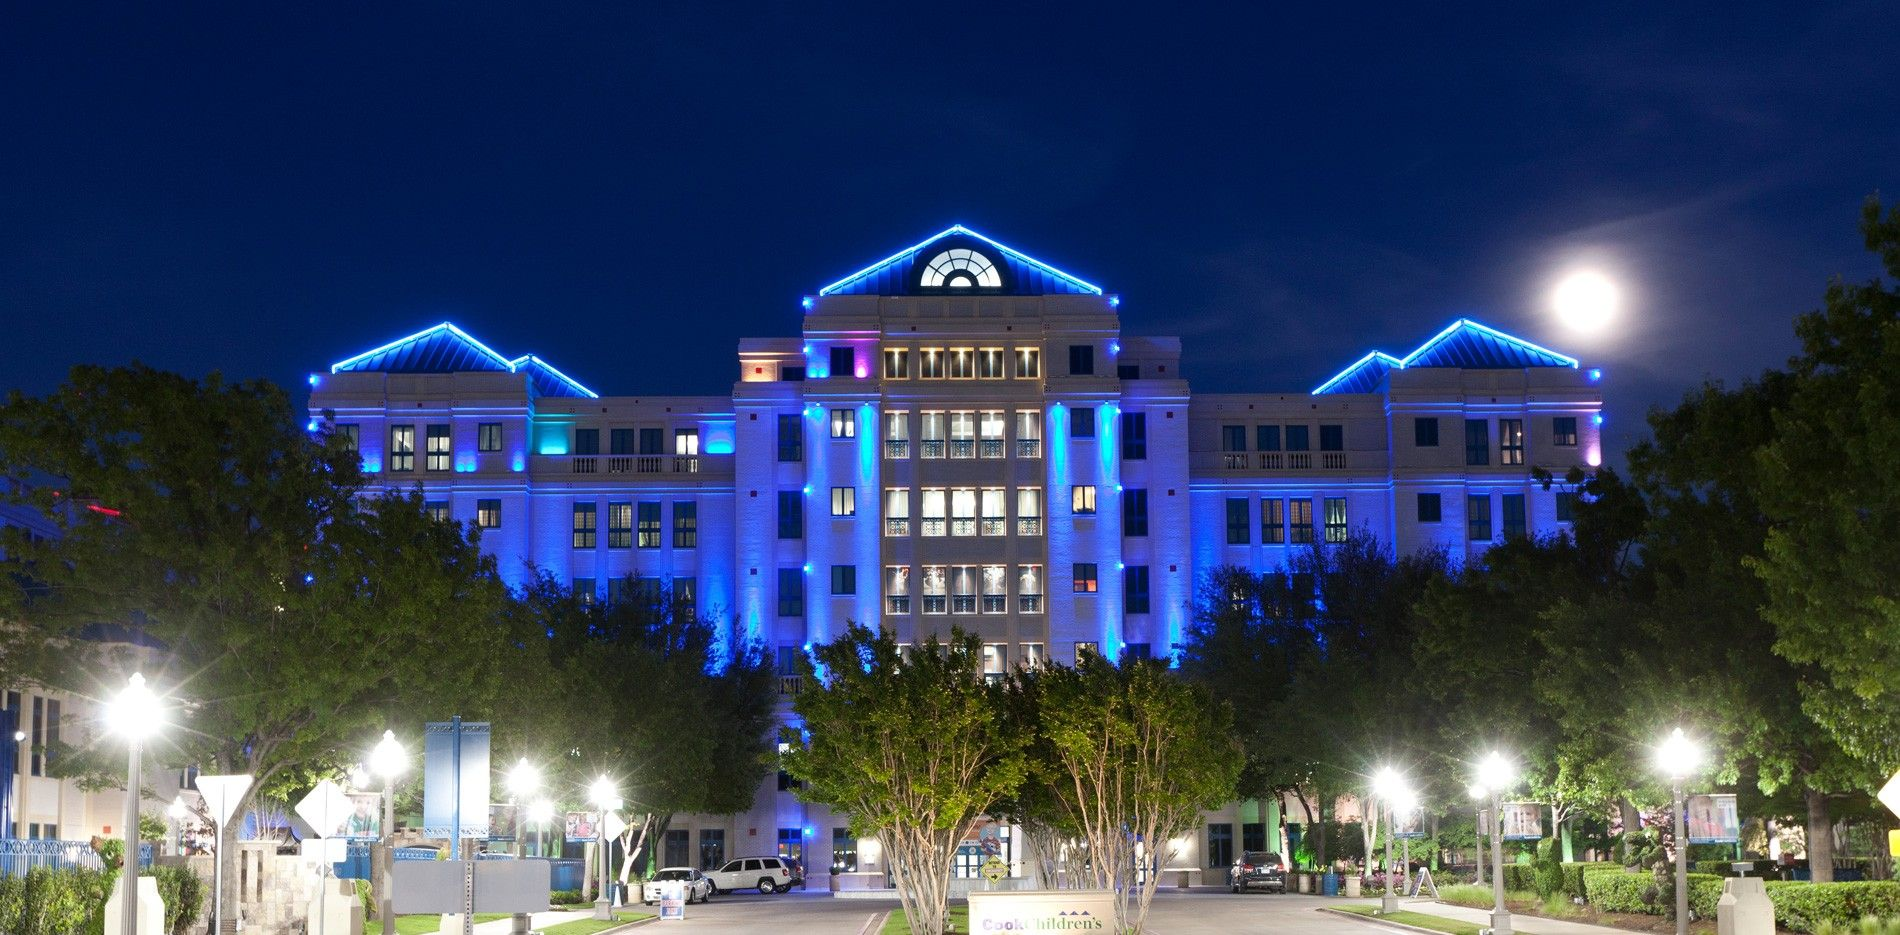 Our complete network of care includes a medical center